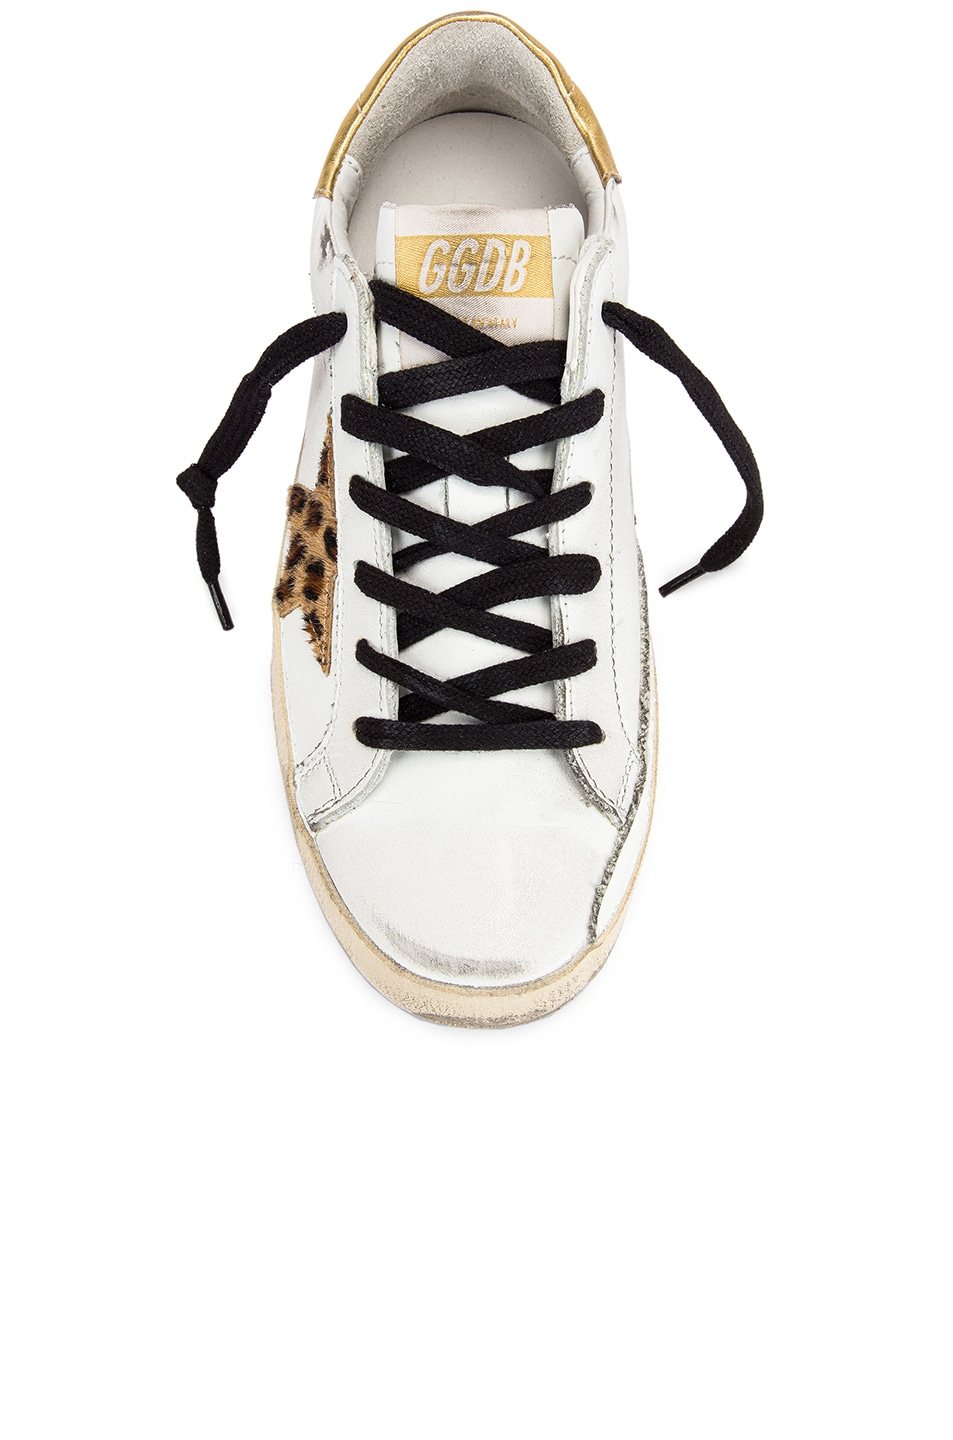 Image 4 of Golden Goose Superstar Sneaker in White Leather, Gold & Leopard